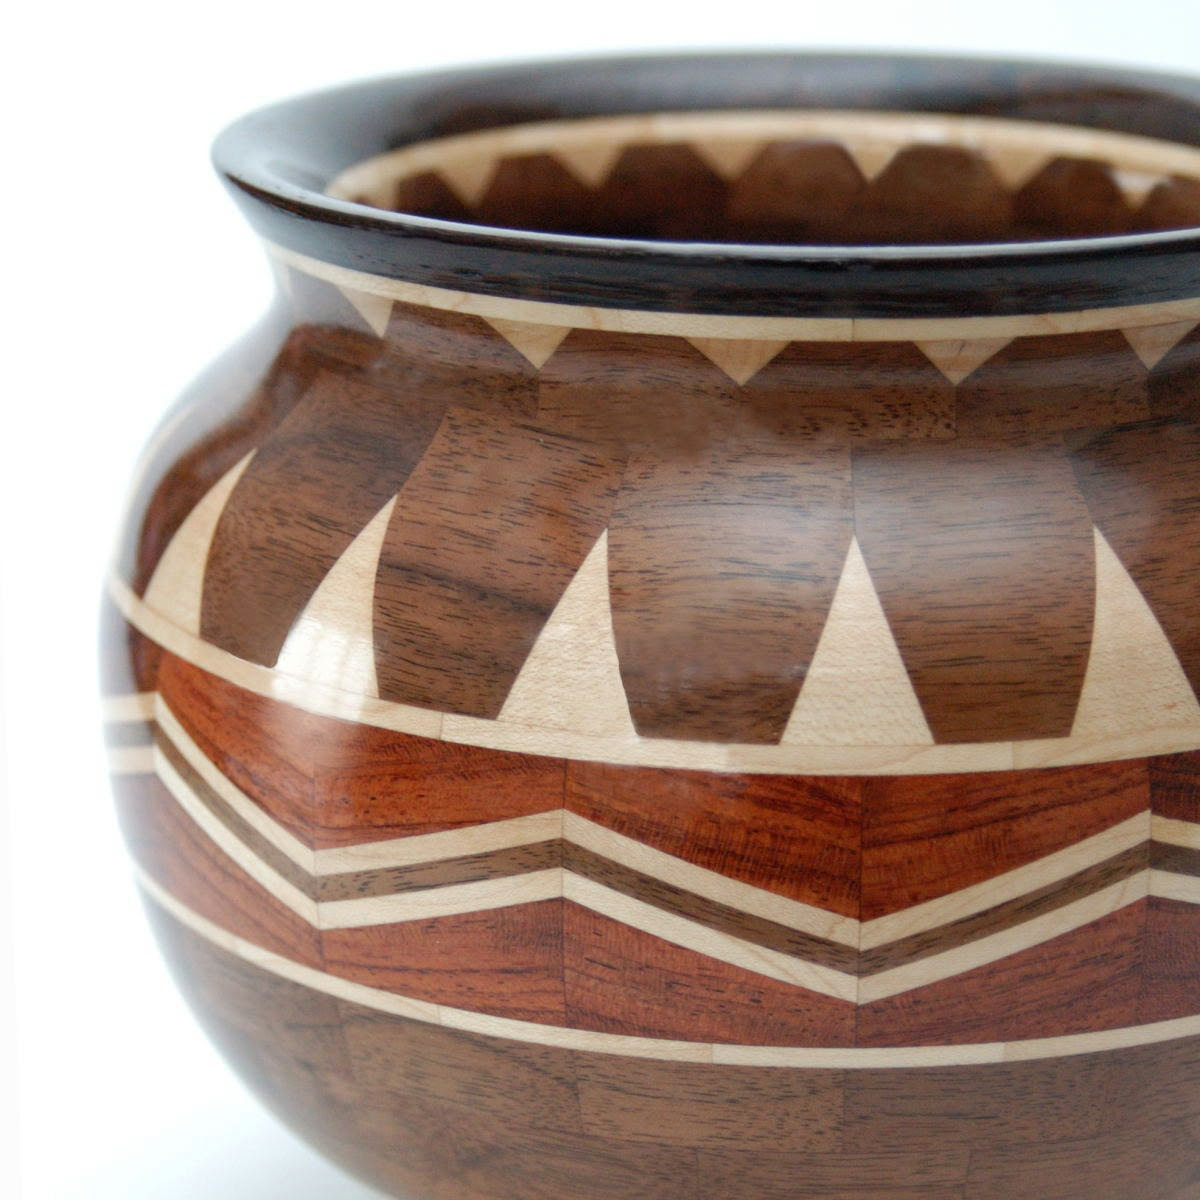 Charismatic Chai Segmented Bowl Featuring Bubinga, Maple, Oregon Black Walnut and Wenge Woods - fostersbeauties